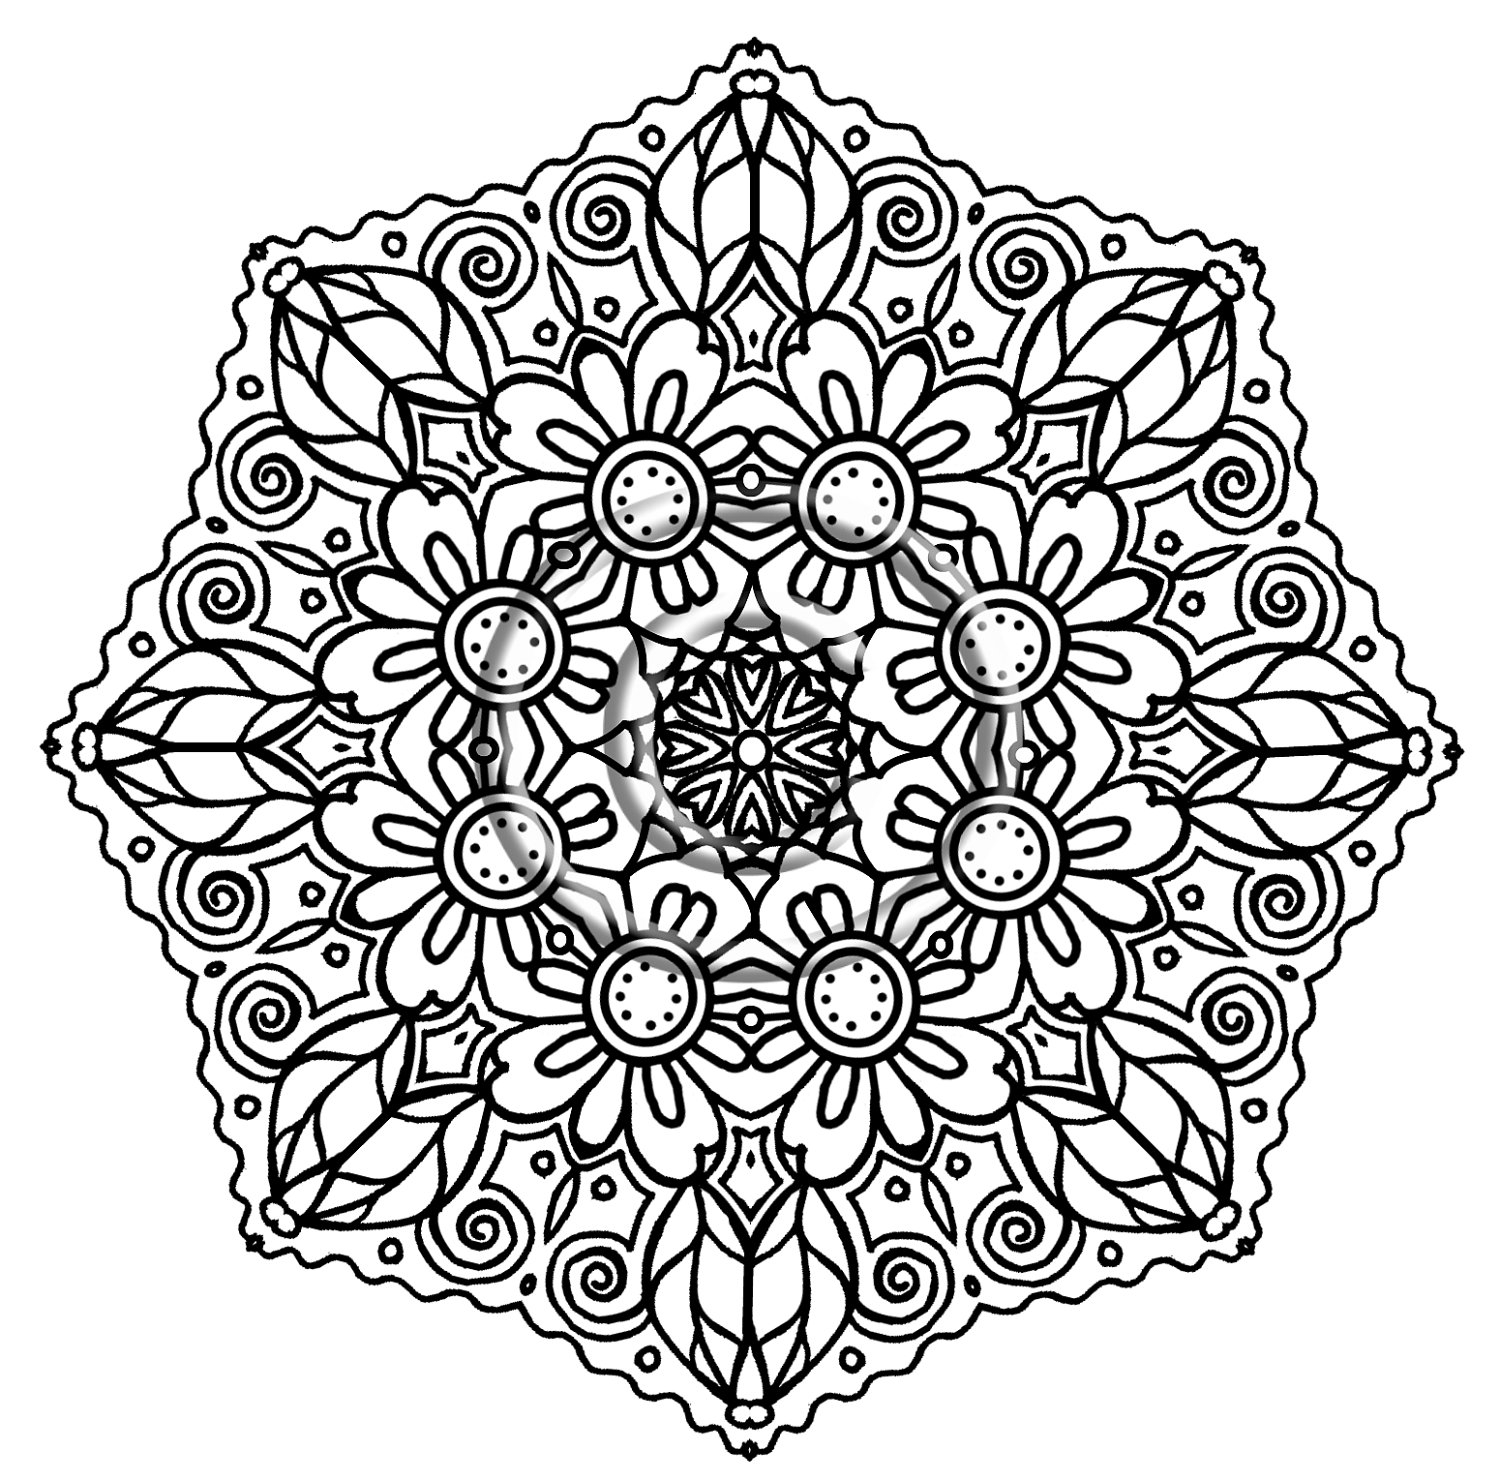 Free Printable Flower Mandala Coloring Pages At Getdrawings Com